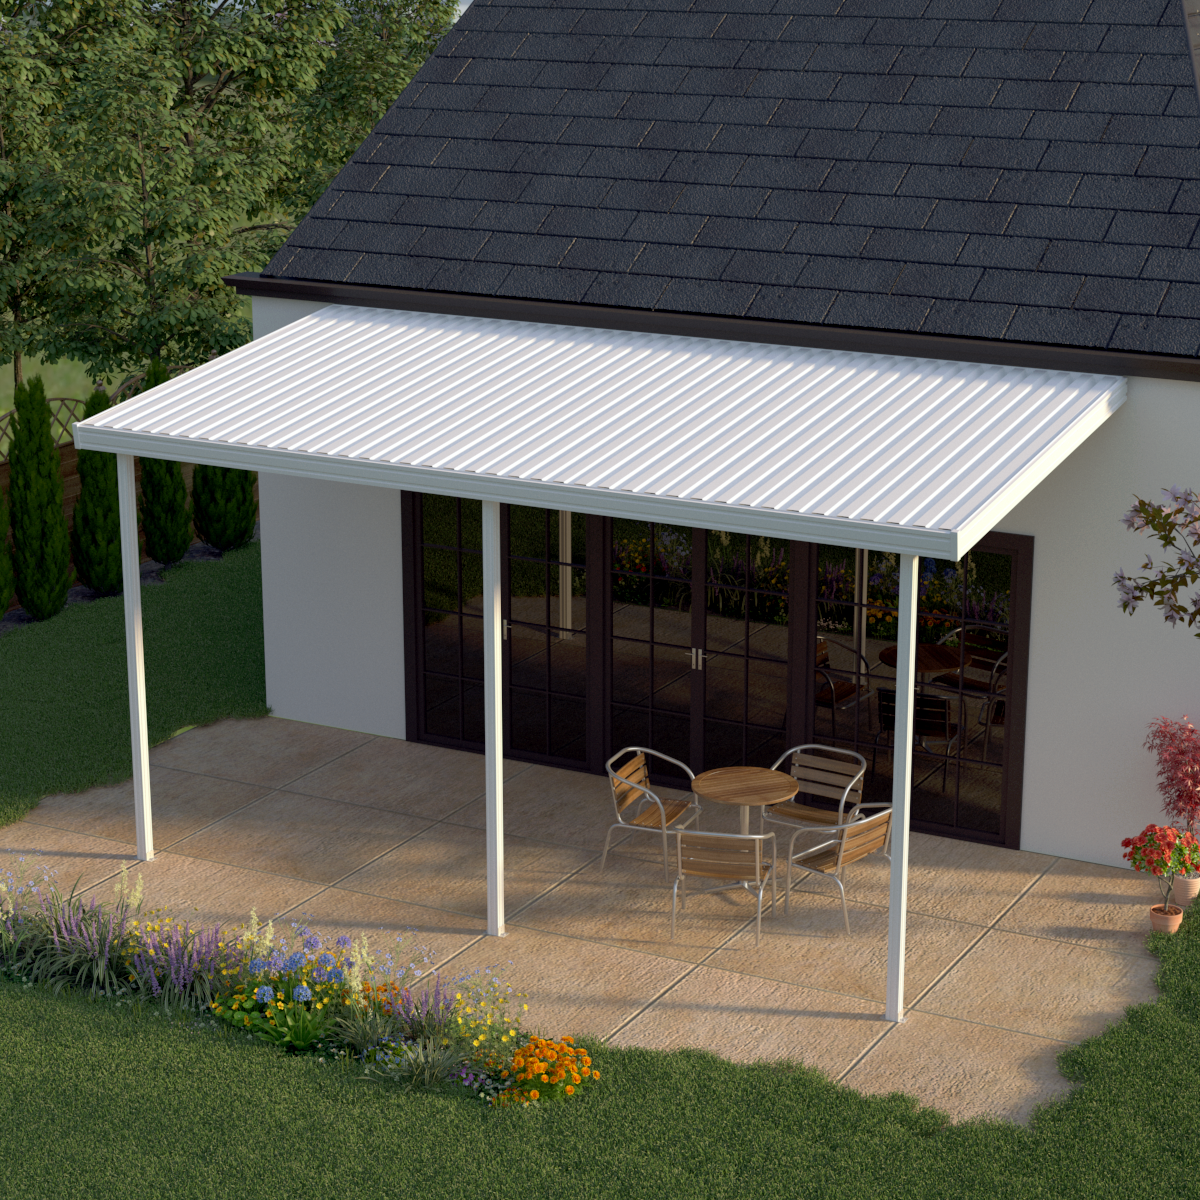 Image of Heritage Patios 16 ft. x 8 ft. White Aluminum Attached Patio Cover (3 Posts / 20 lb. Live Load)